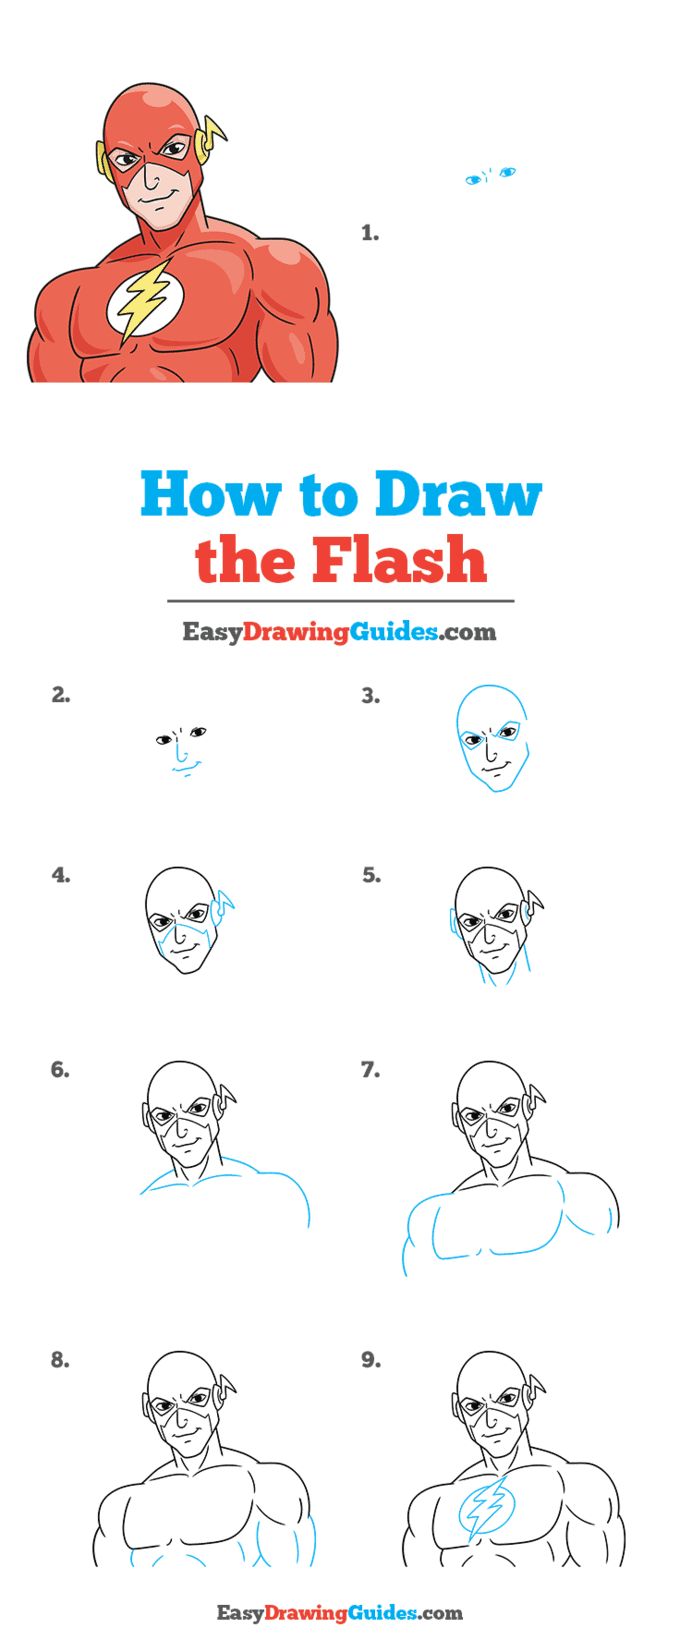 How to Draw the Flash Step by Step Tutorial Image